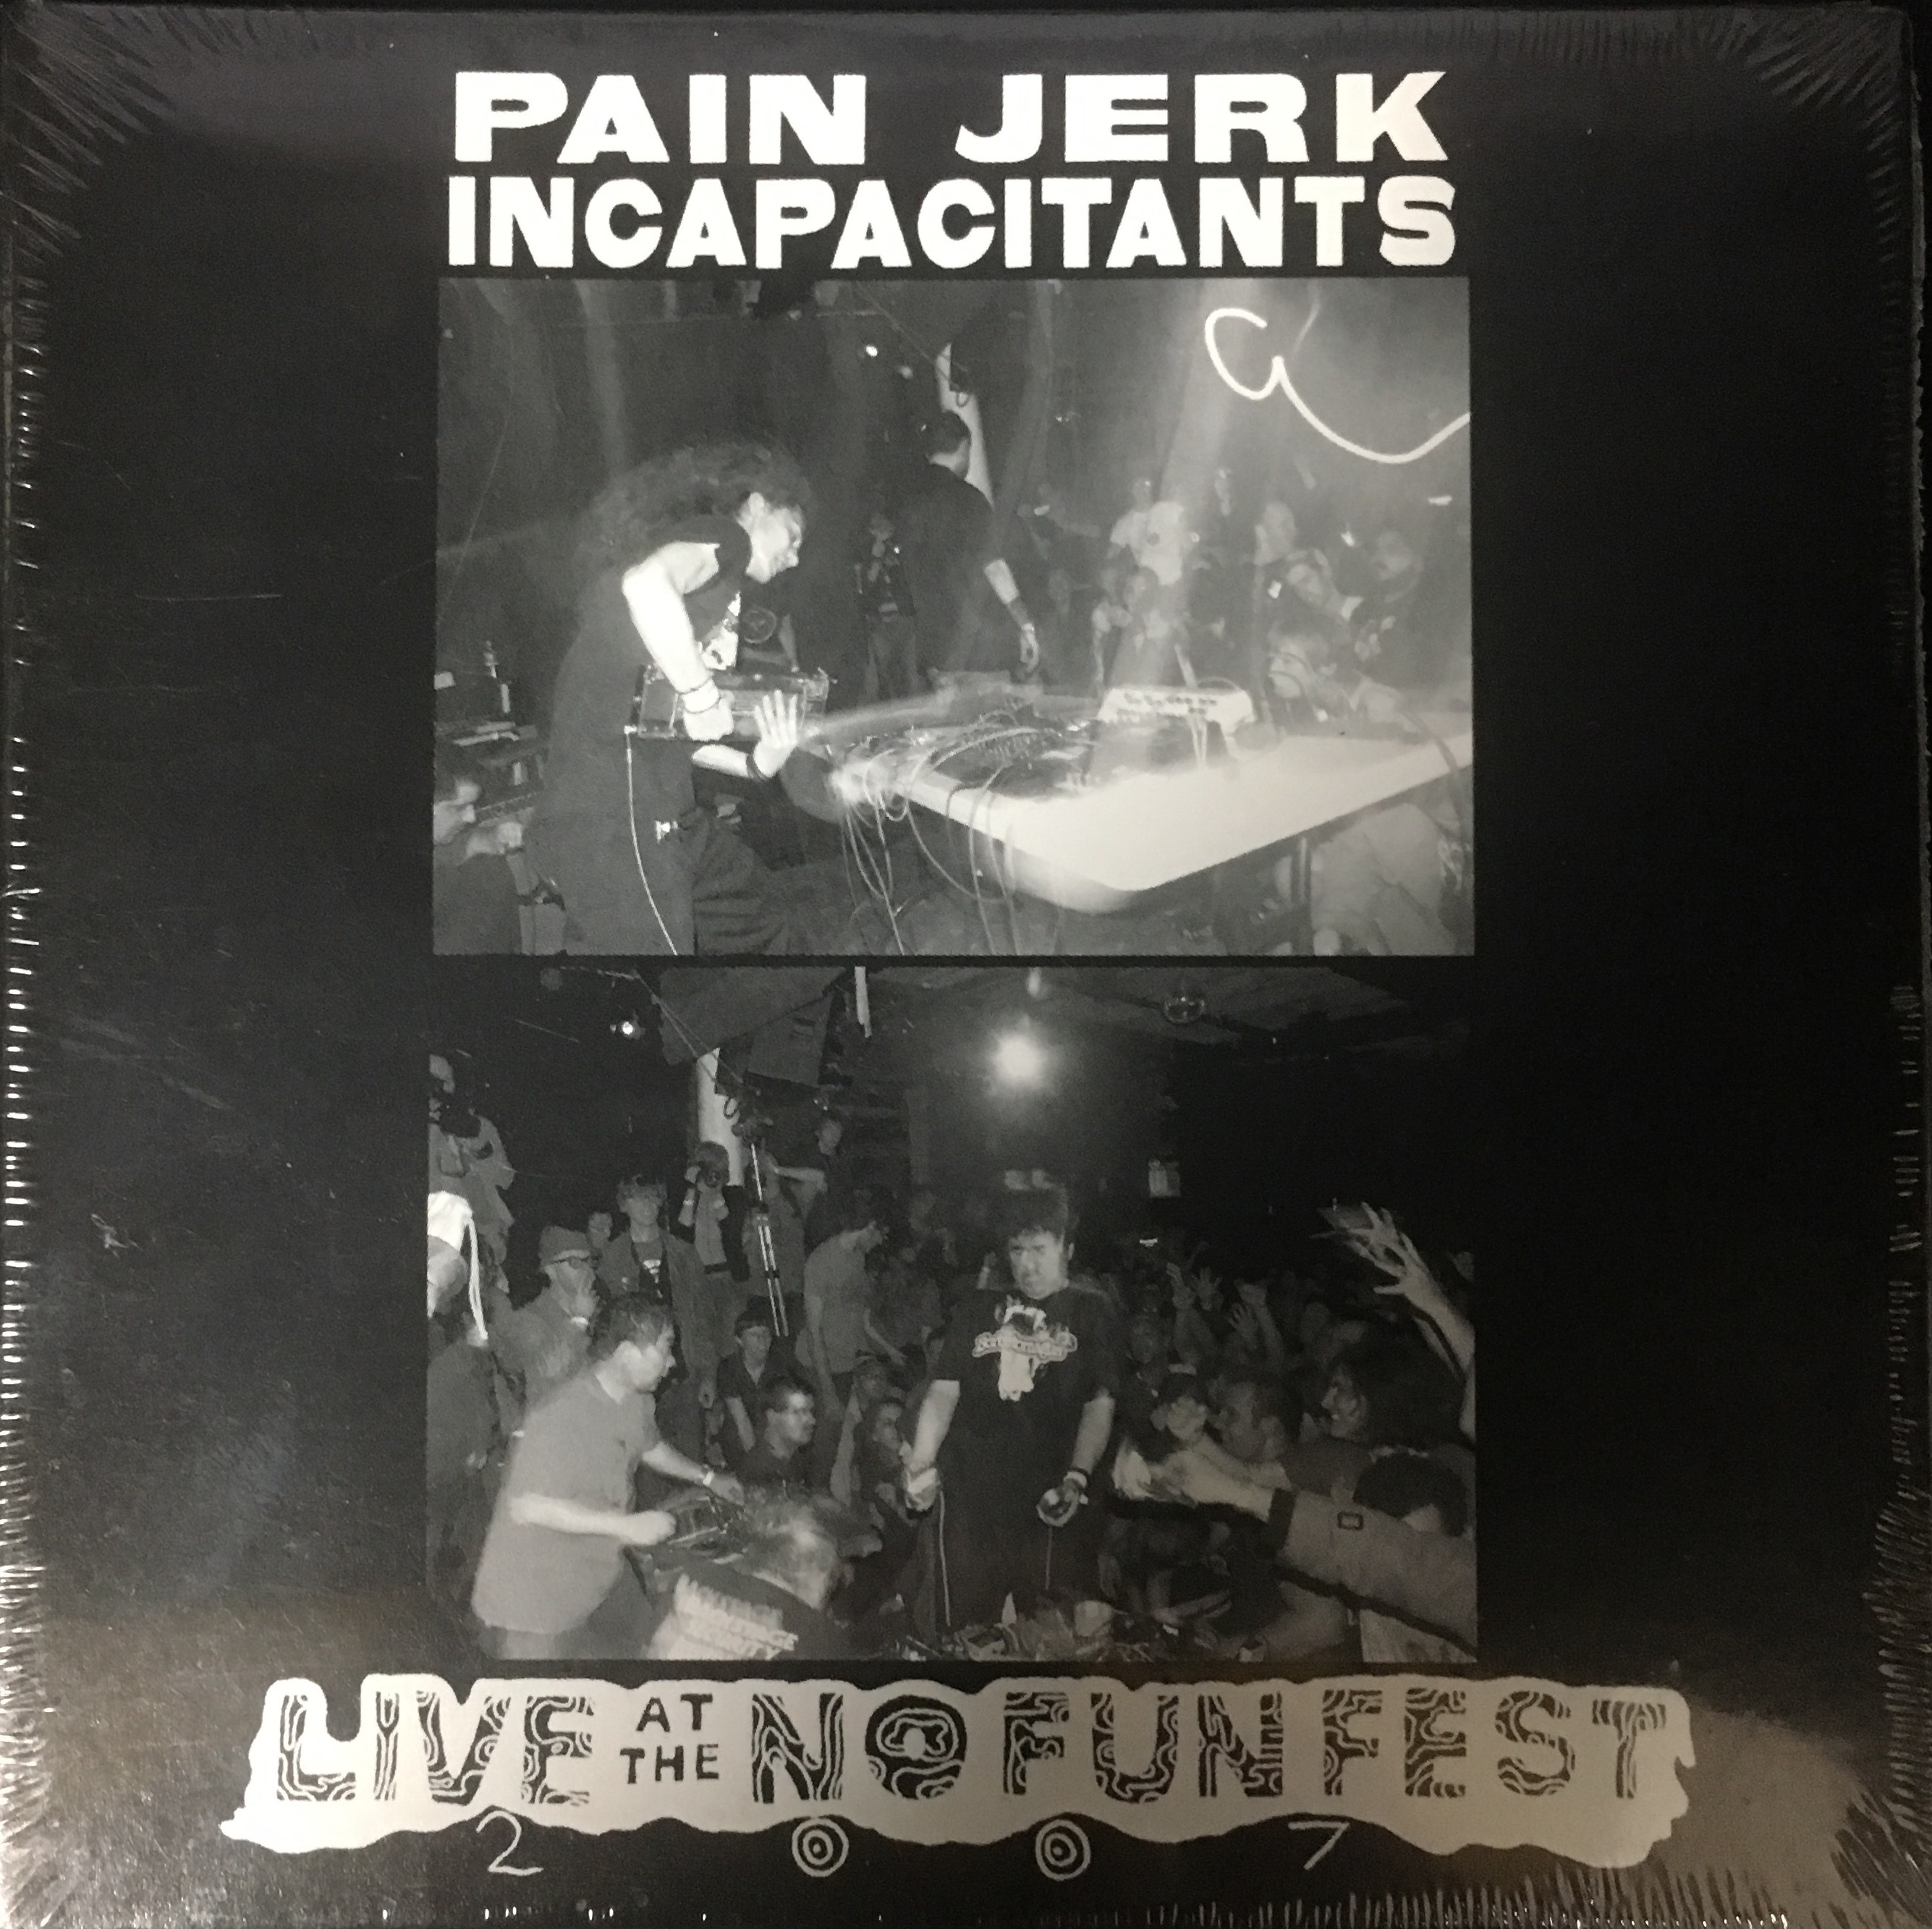 Painjerk / Incapacitants ‎– Live At The No Fun Fest 2007(CD)